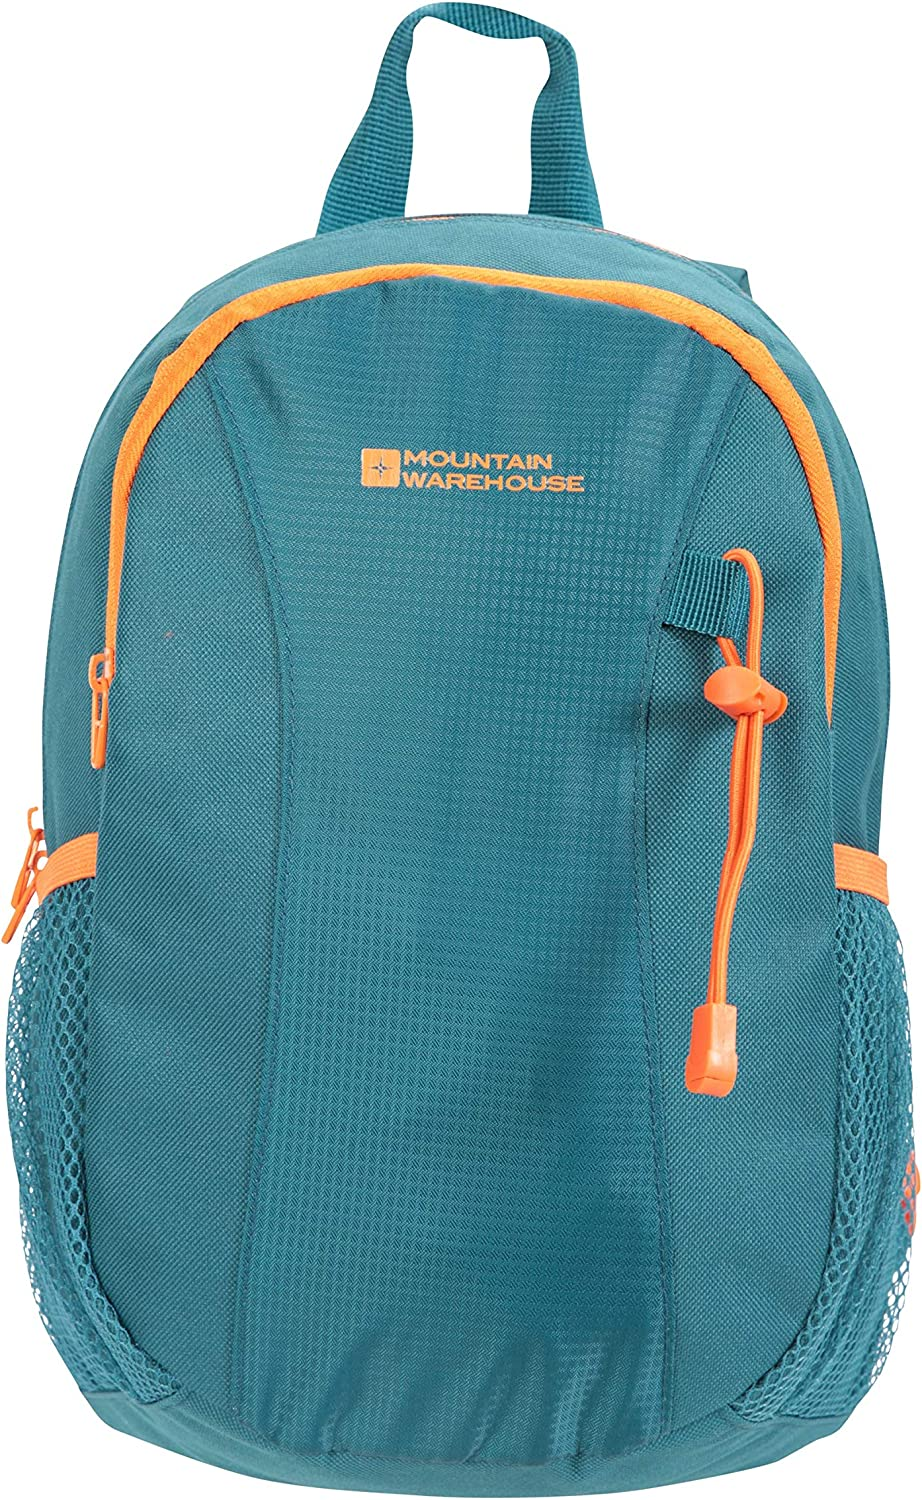 Mountain Warehouse Dash 10L Backpack Lightweight Bag